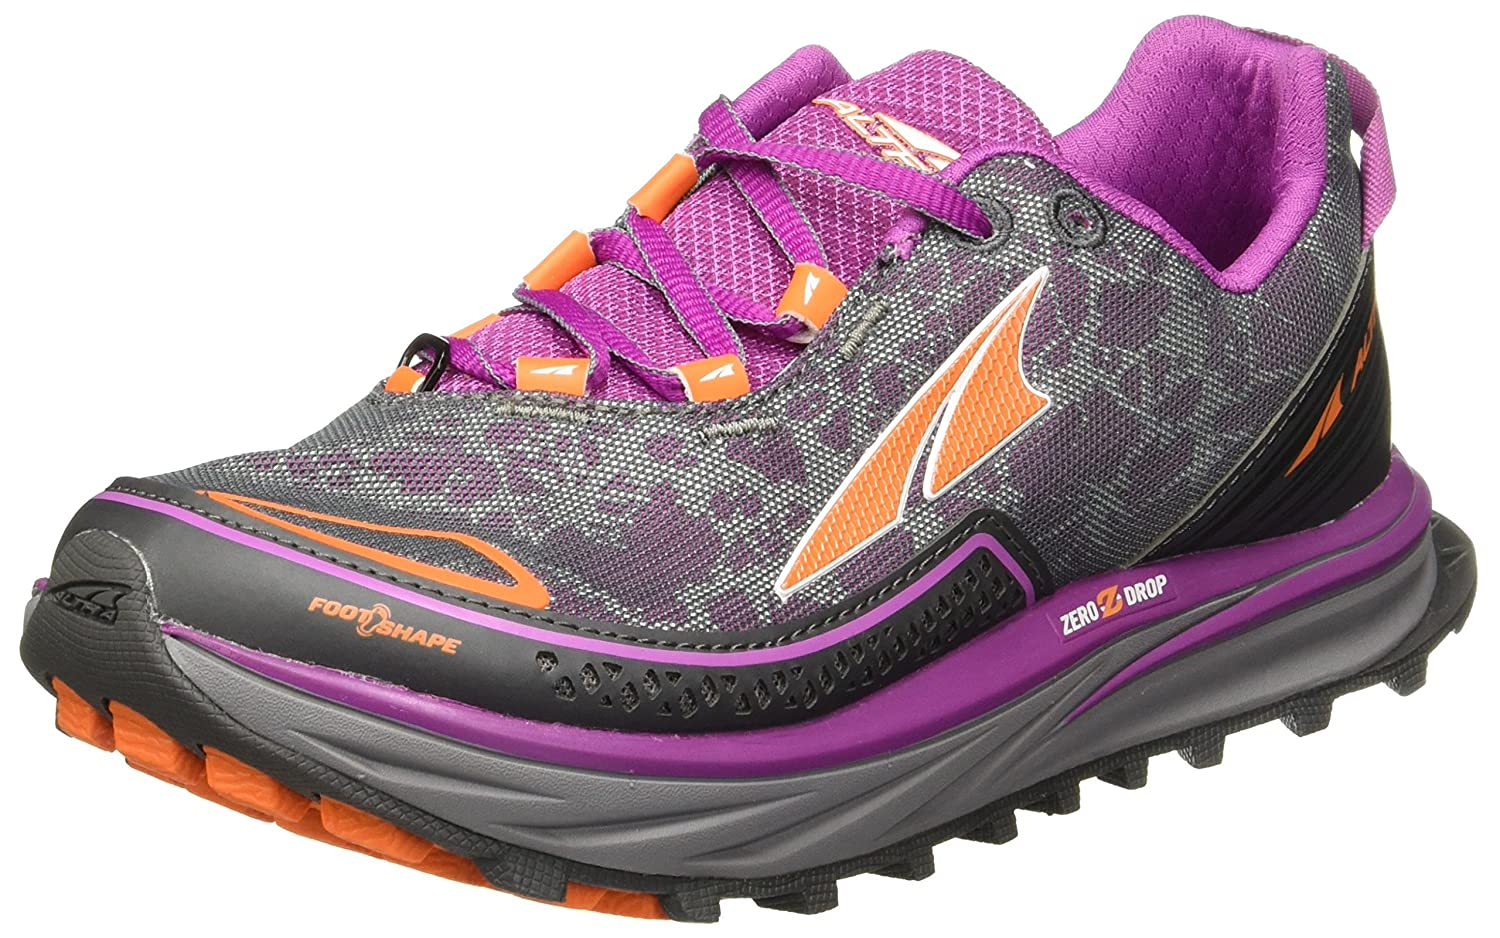 Altra Timp Trail Running Shoes - Women's B01N5HWT4U 7.5 B(M) US|Orchid